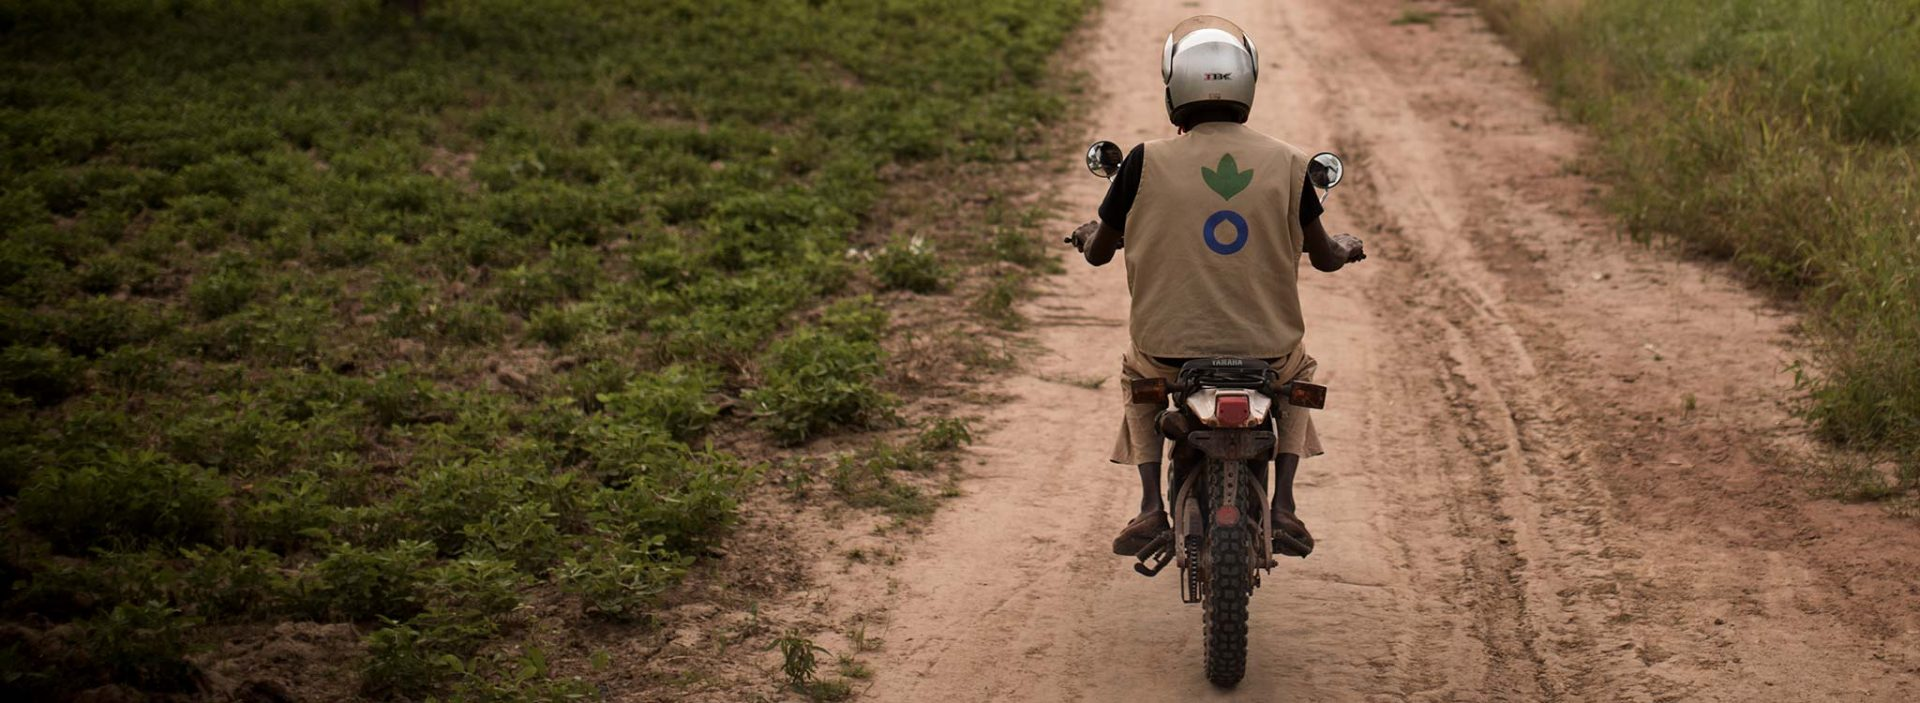 Ibrahim, an Action Against Hunger community health worker, on his motorbike in Mali.